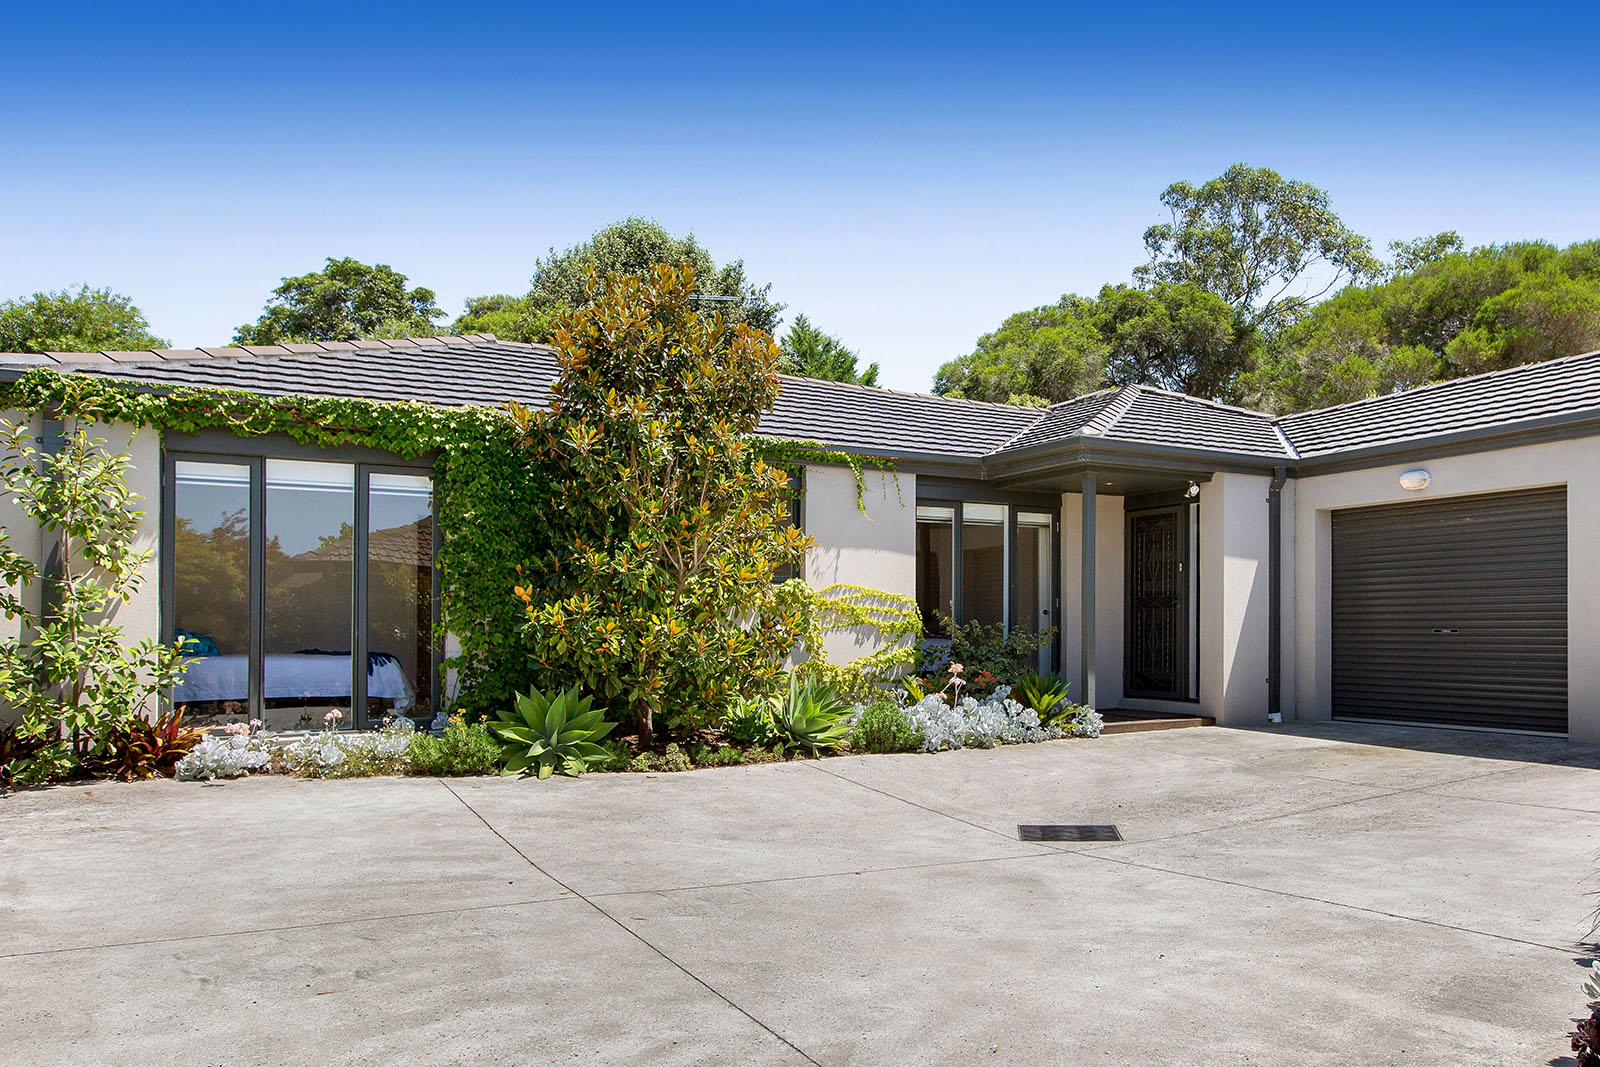 74a Fleetwood Crescent, Frankston South SOLD FOR $725,000 FEB 2018